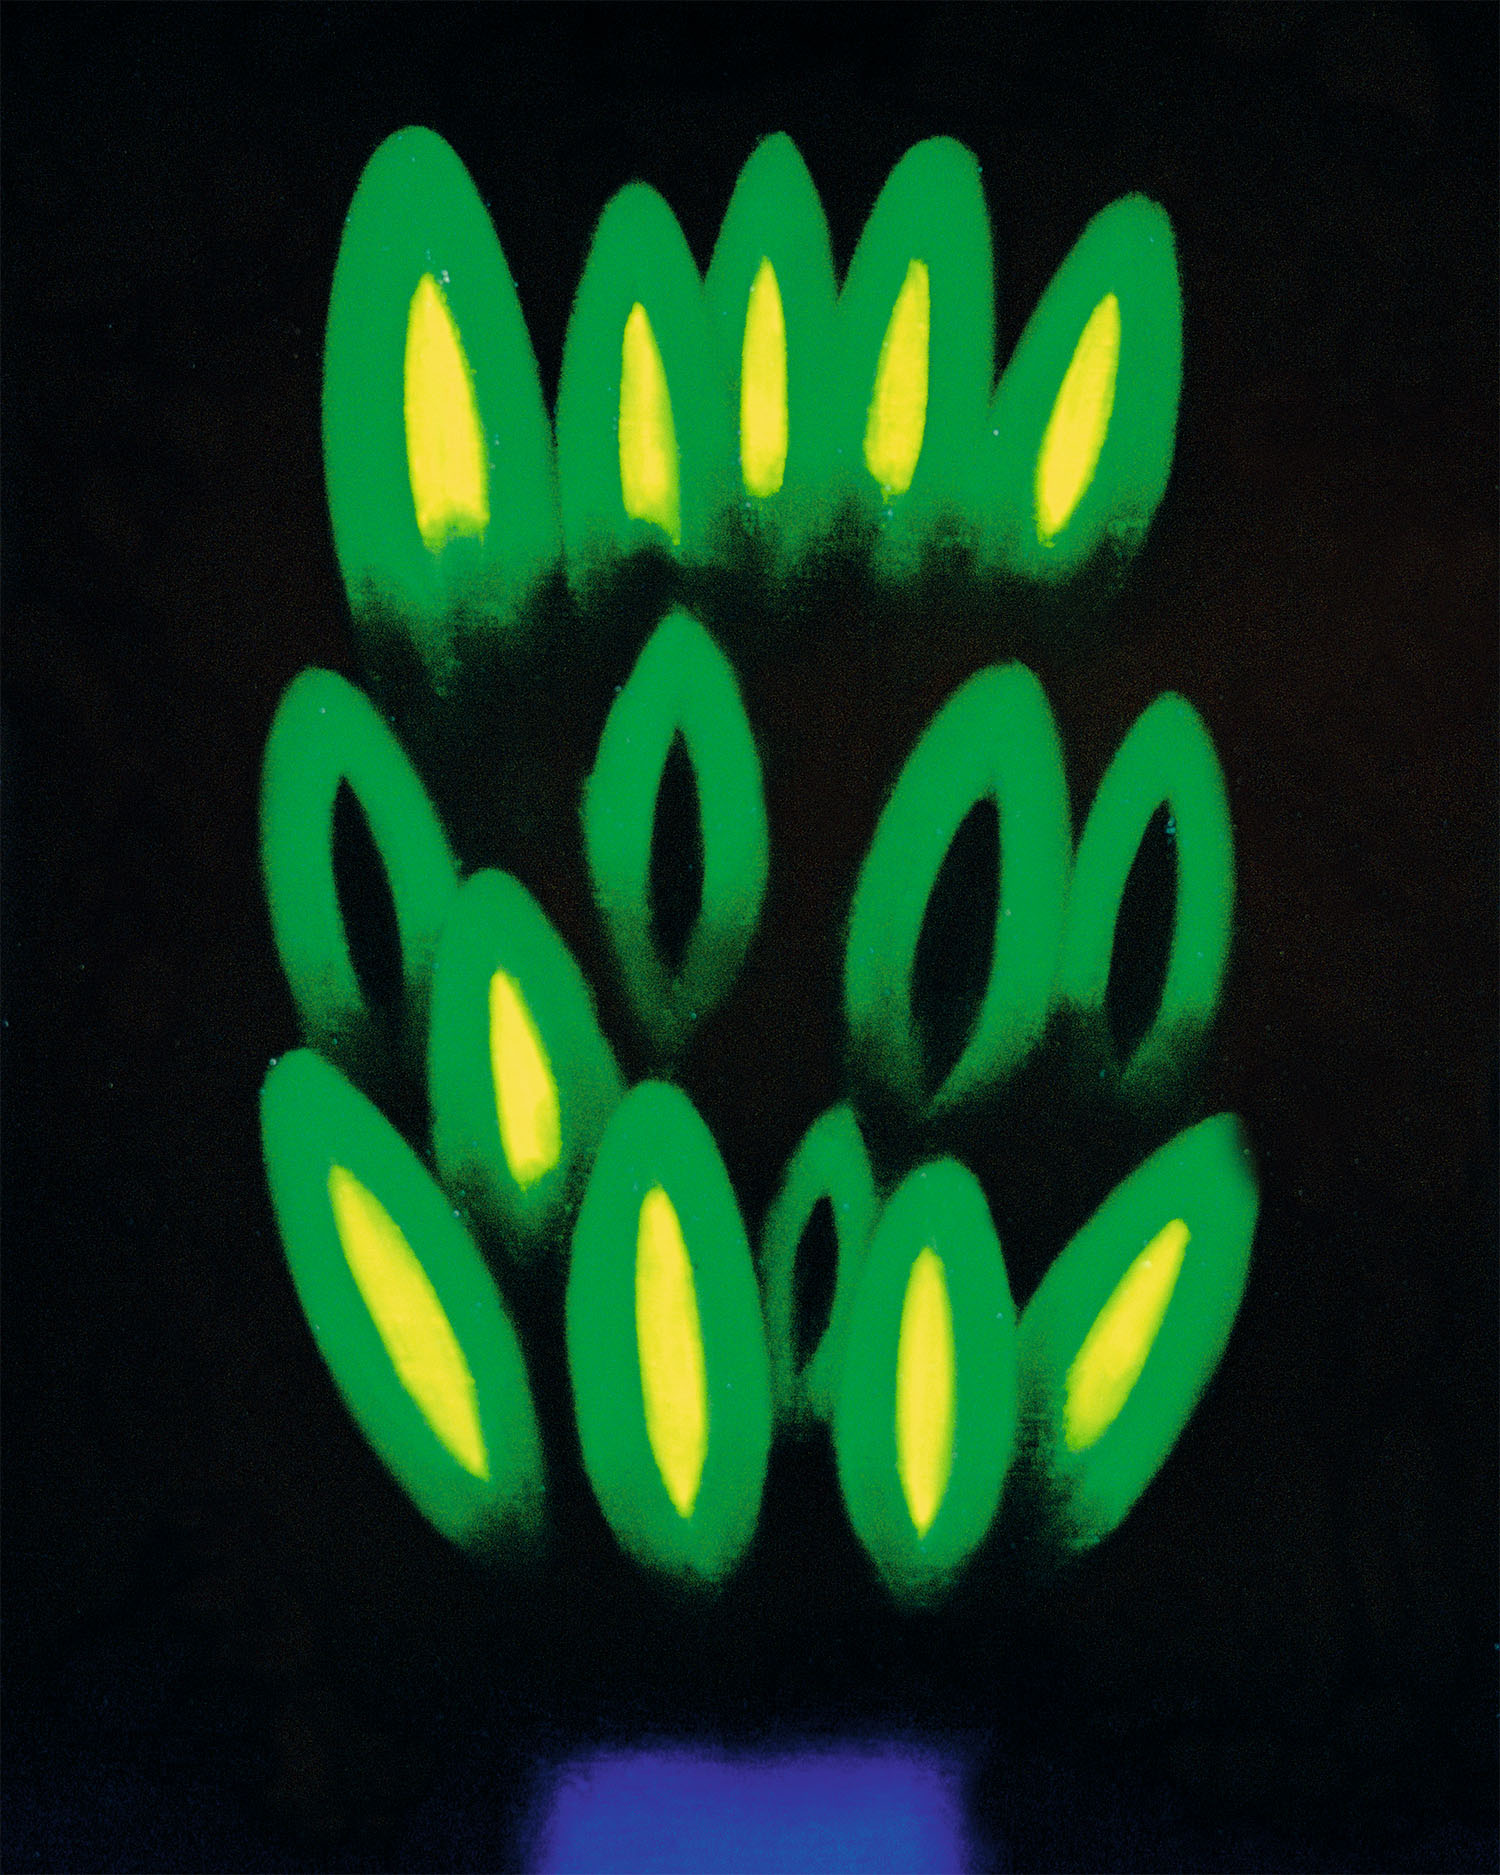 Cactus. Josep Navarro Vives, 1999, Oil on canvas, cm 46 x 33.